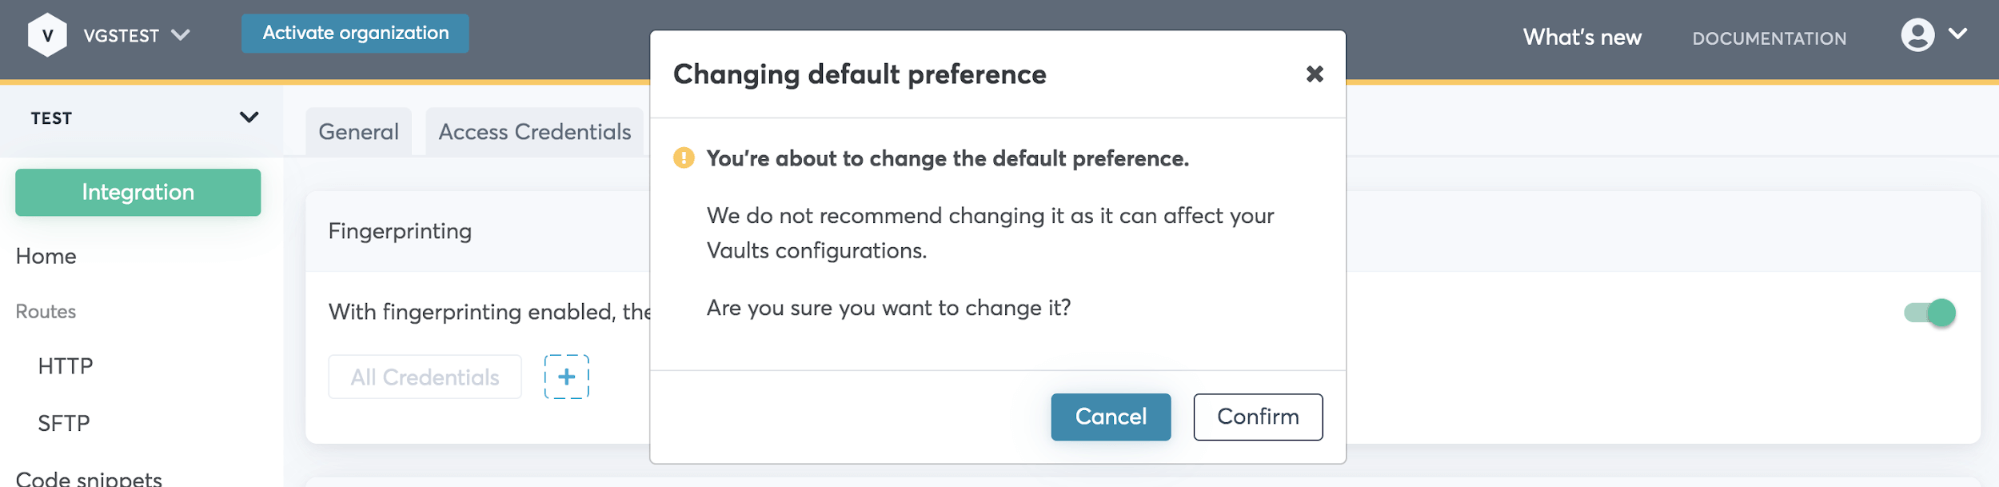 Changing default preference modal